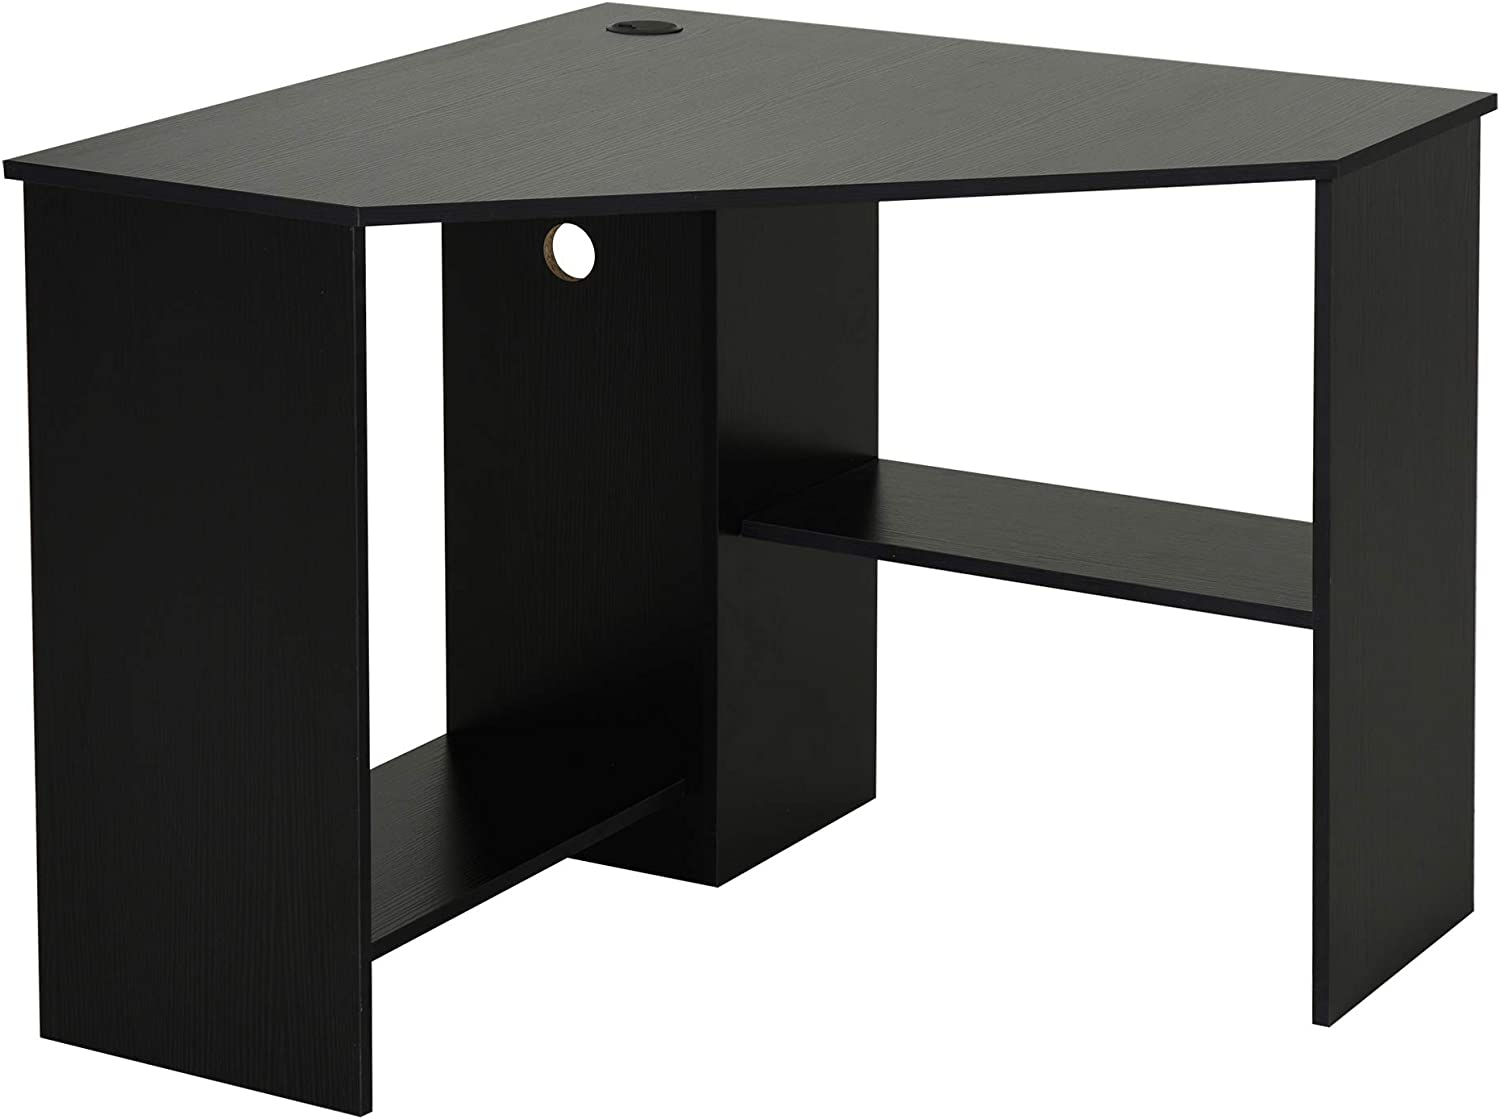 HOMCOM Multi-Tier Corner Computer Desk Writing Table for Home & Office with Multiple Shelf Build & Sturdy Design, Black